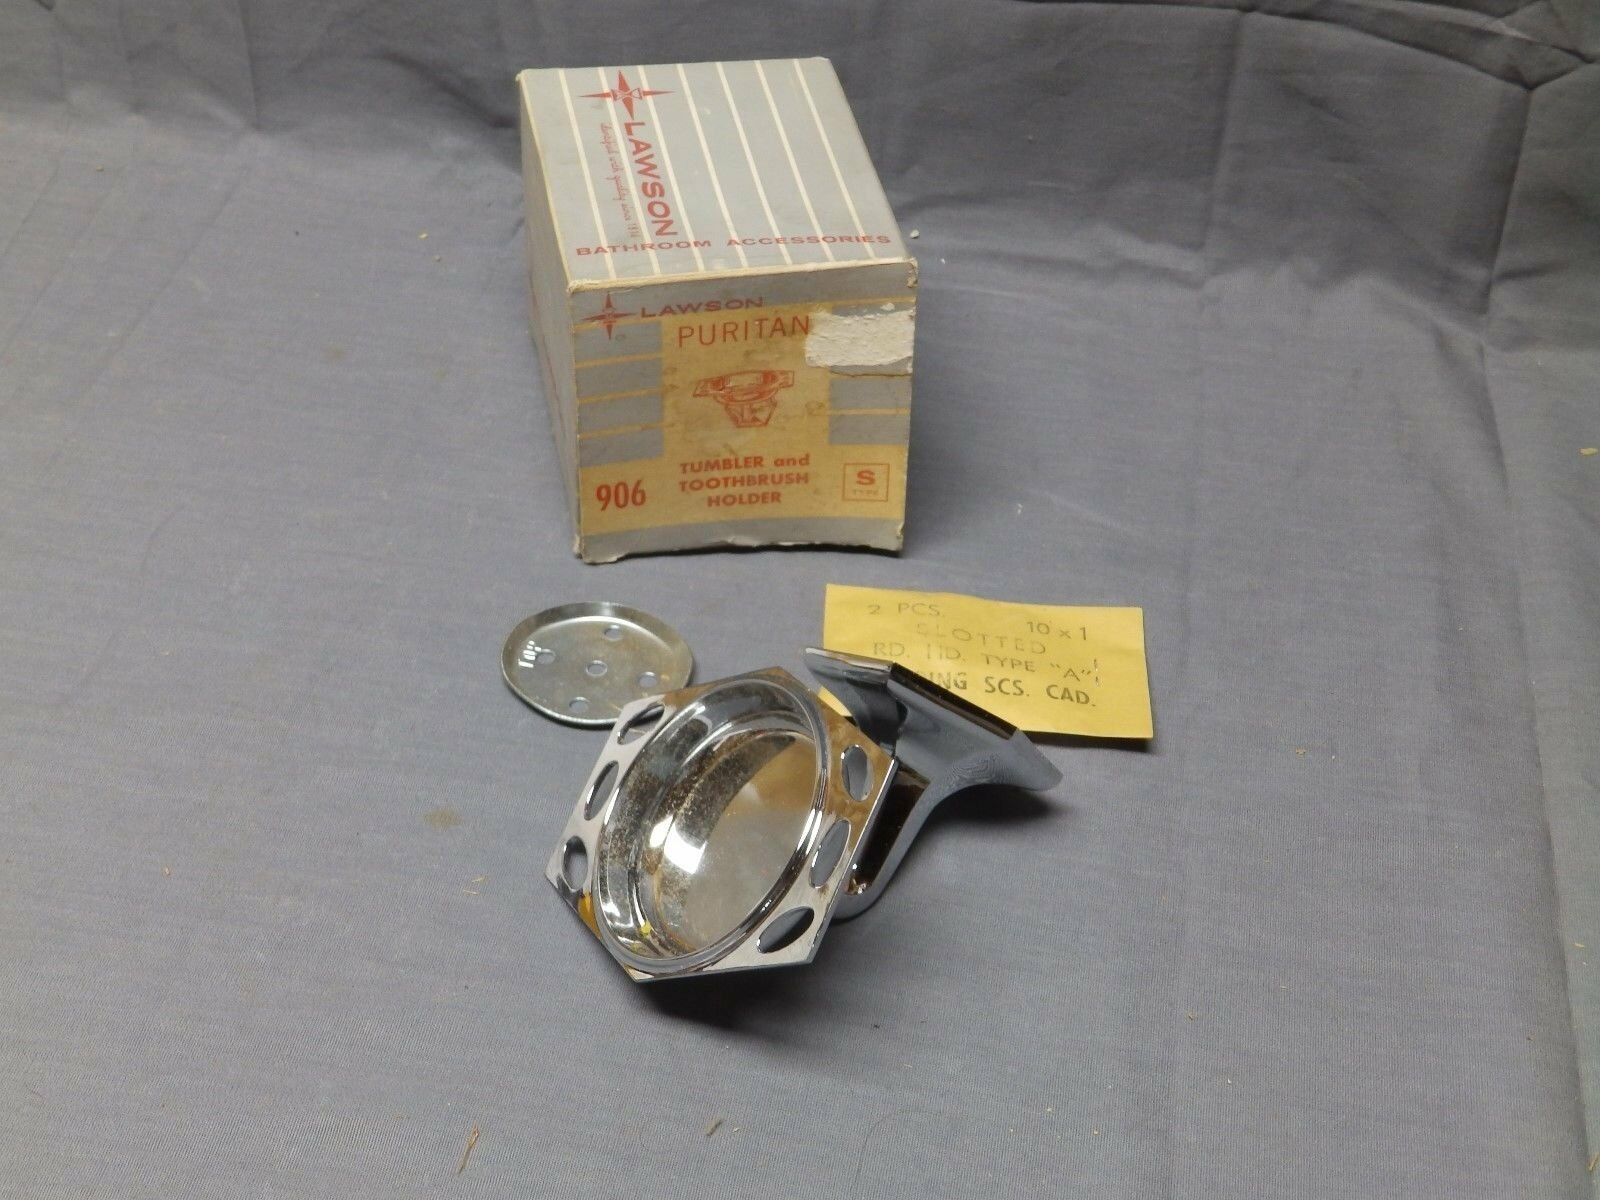 Vtg Chrome Art Deco NOS Toothbrush Cup Tumbler Holder Old Lawson Fixture 2121-16